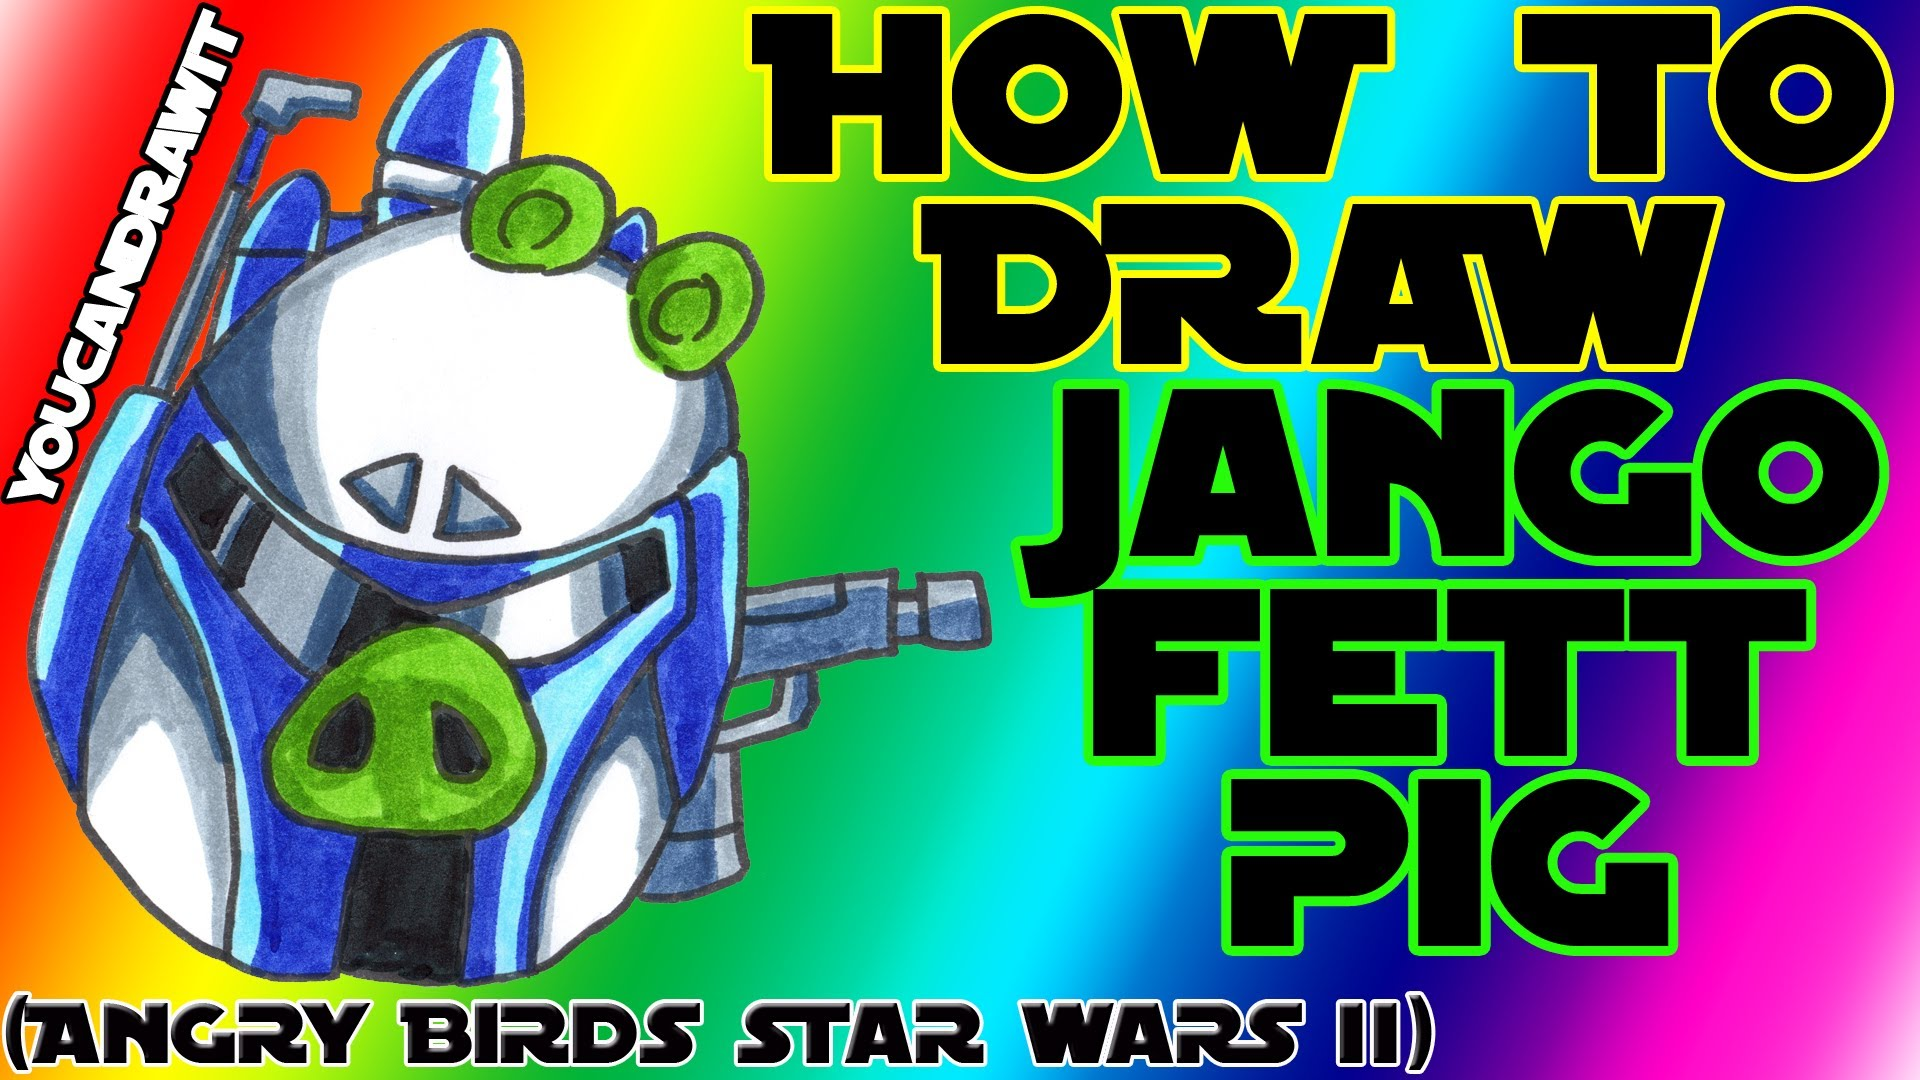 1920x1080 How To Draw Jango Fett Pig From Angry Birds Star Wars 2